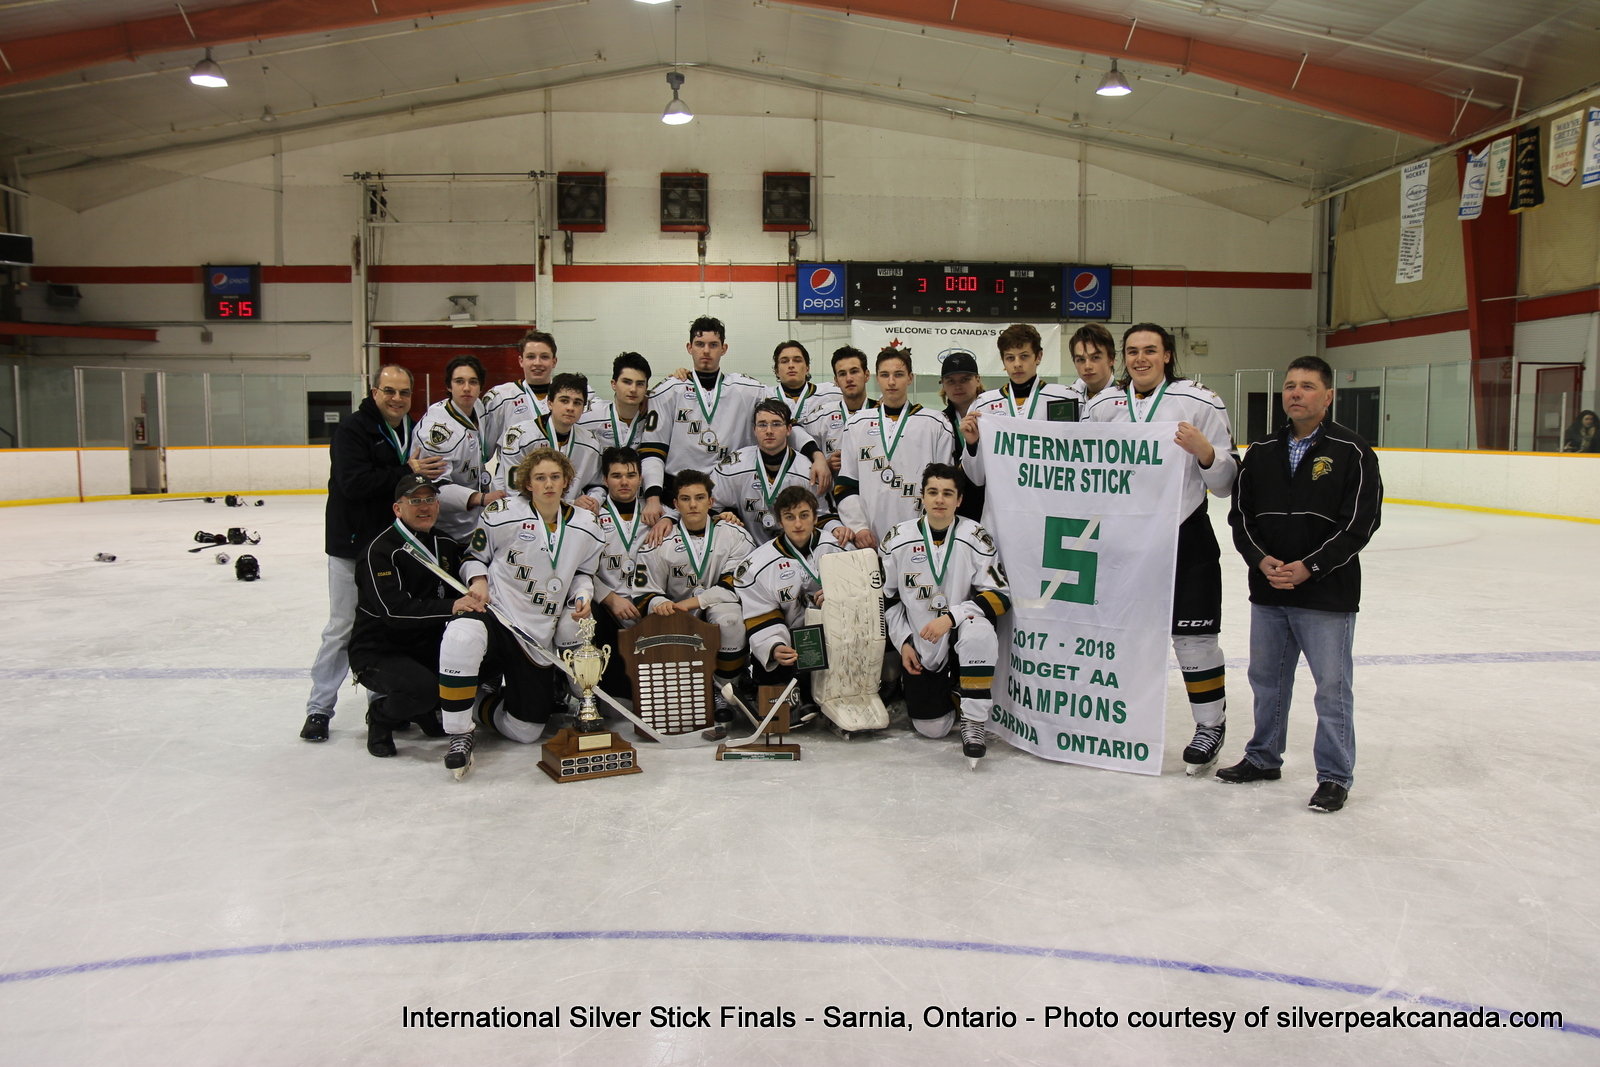 Silver Stick Finals Photos Sarnia SilverPeak Studios Action Photography Midget AA Champions